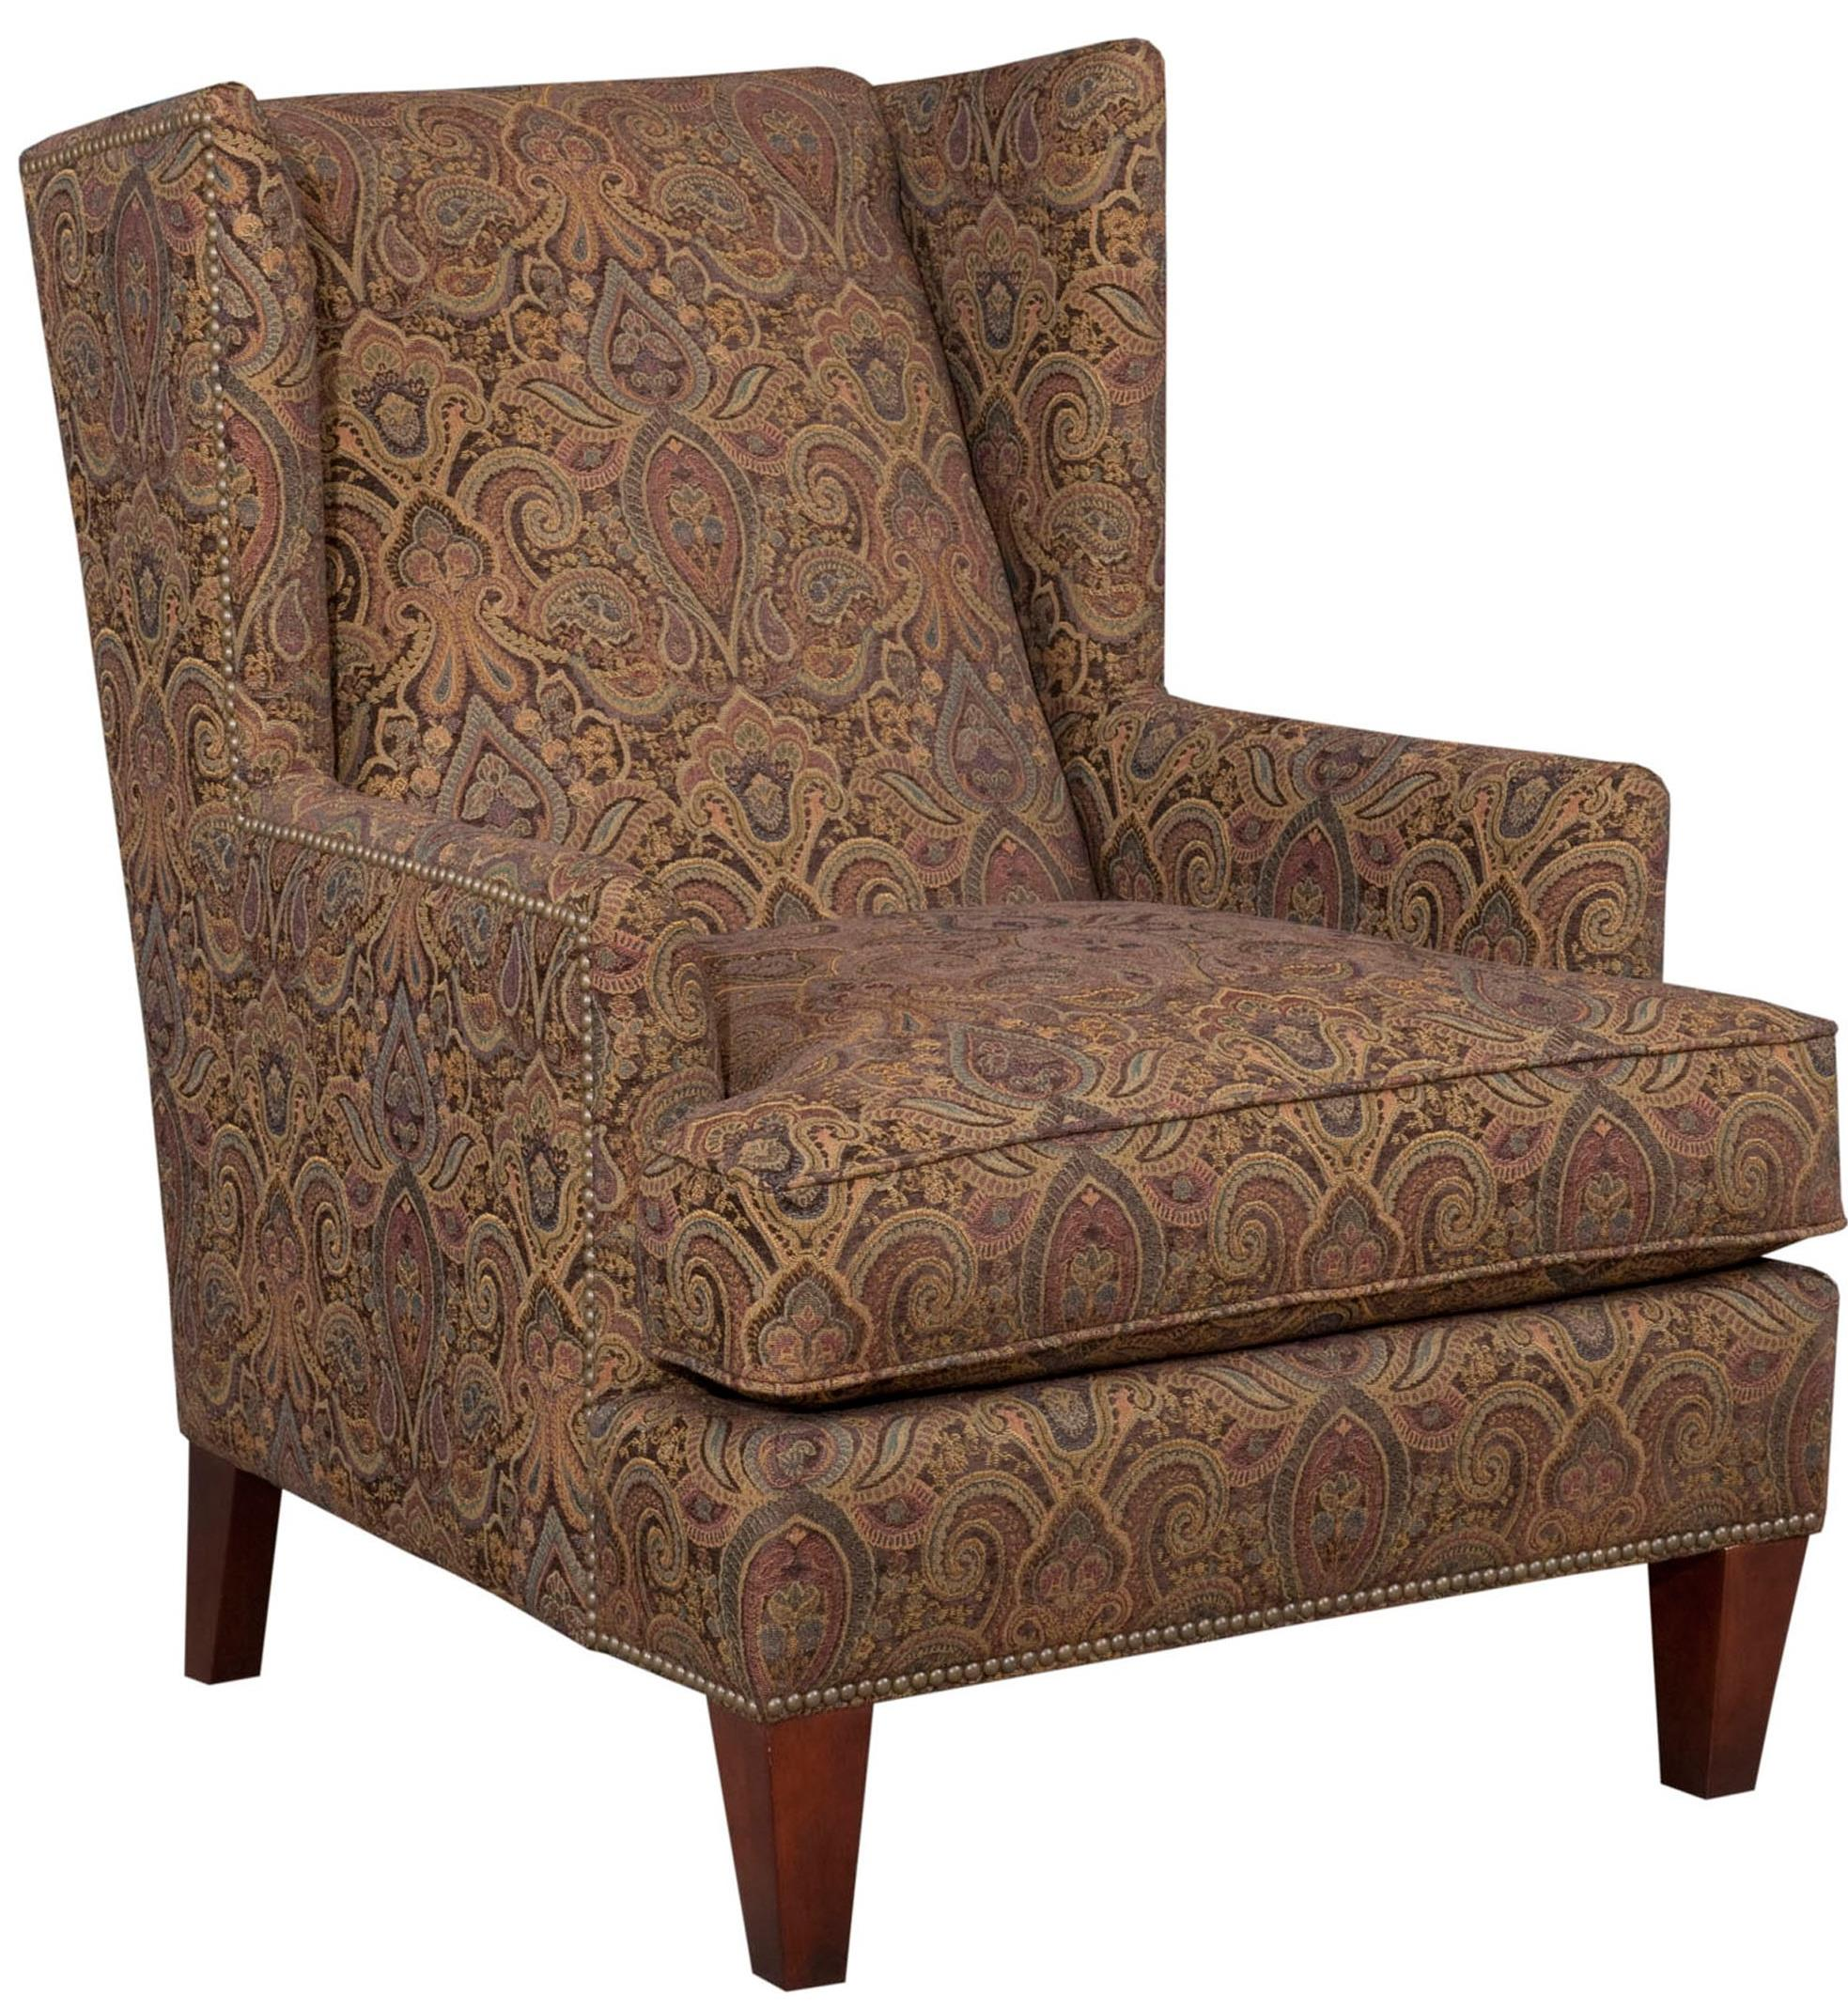 Broyhill Furniture Accent Chairs And Ottomans Lauren Chair Contemporary Wing Chair With Brass